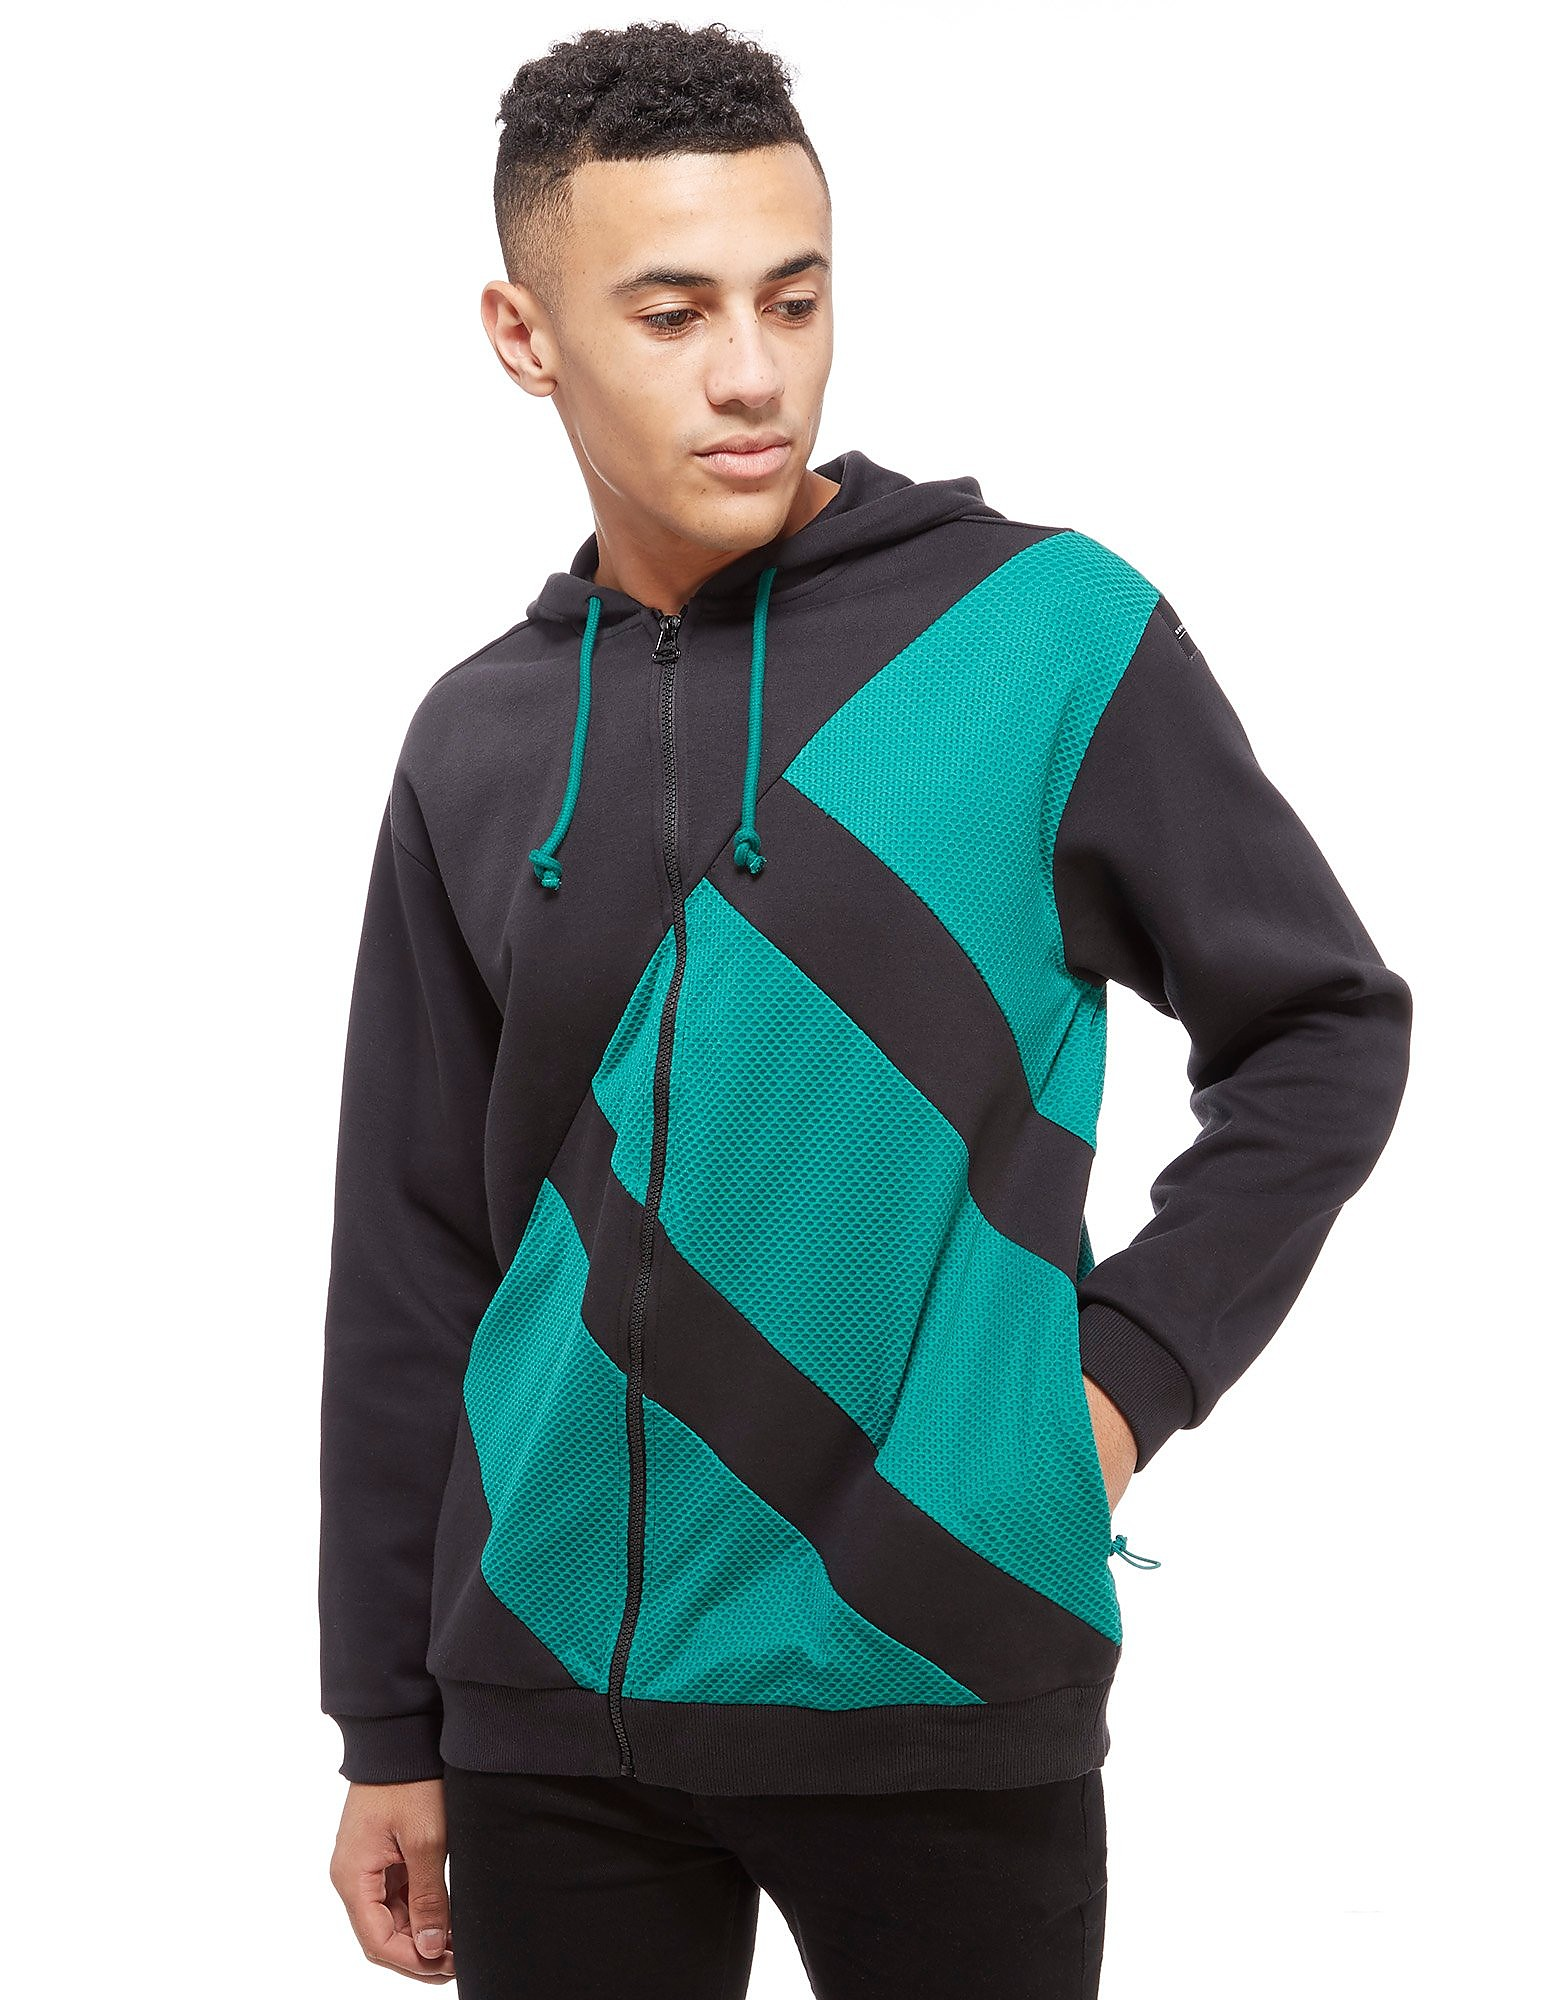 adidas Originals EQT Full-Zip Track Top